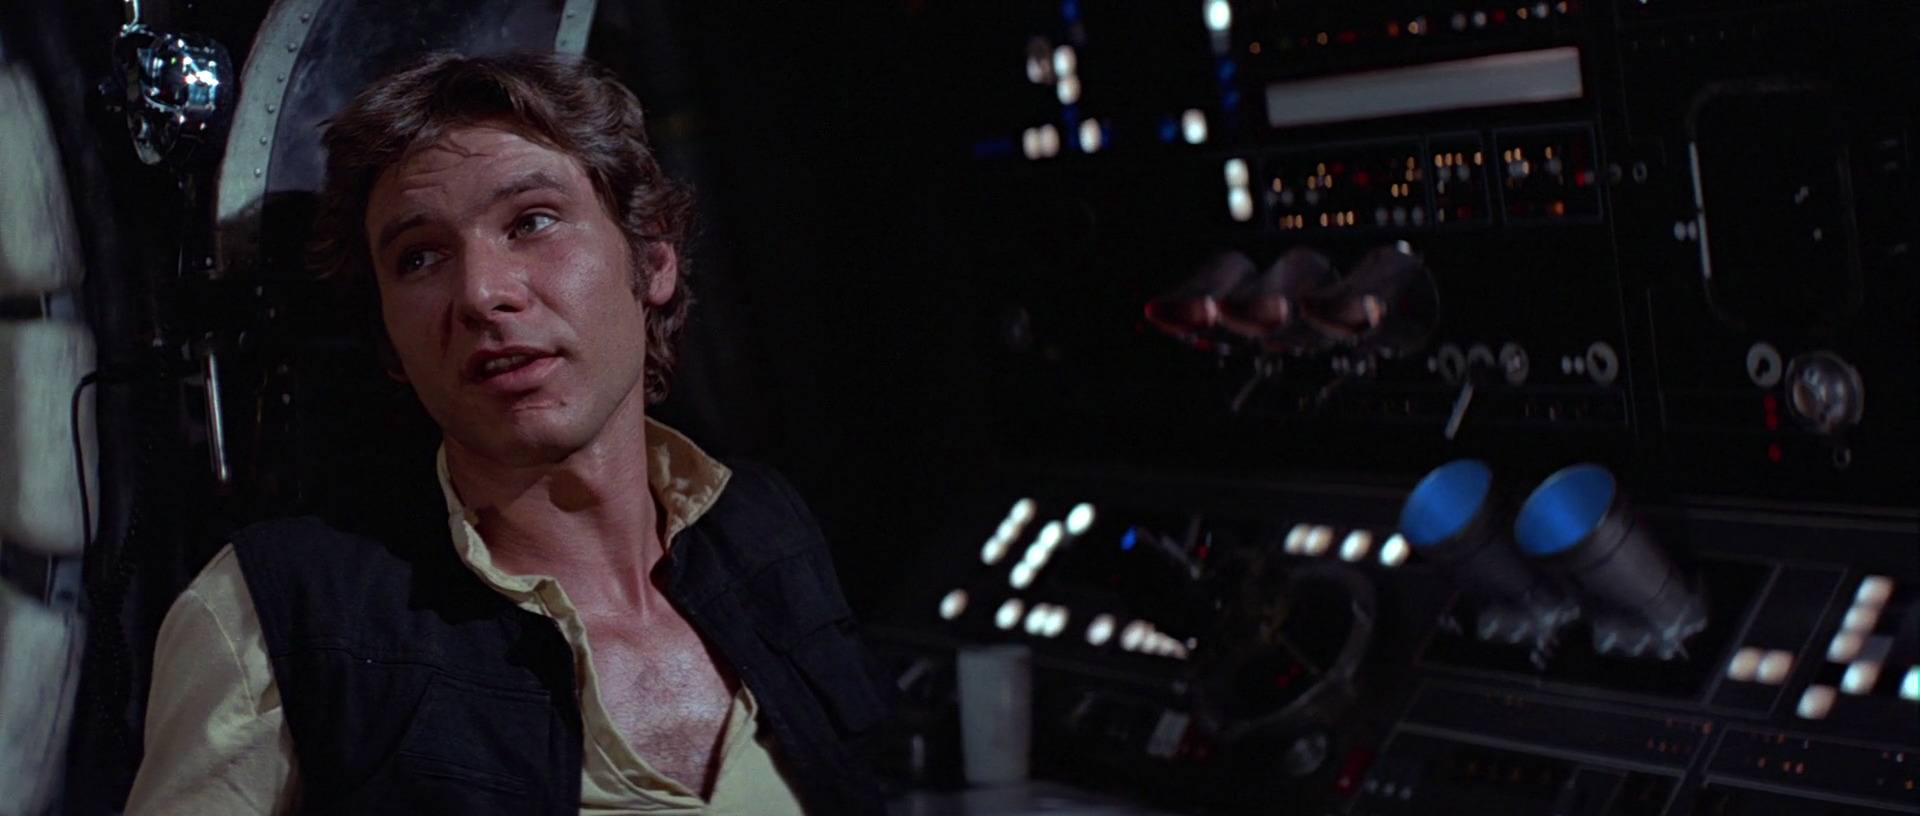 Han Solo sitting in a chair with his feet up, looking to the left of the frame and speaking